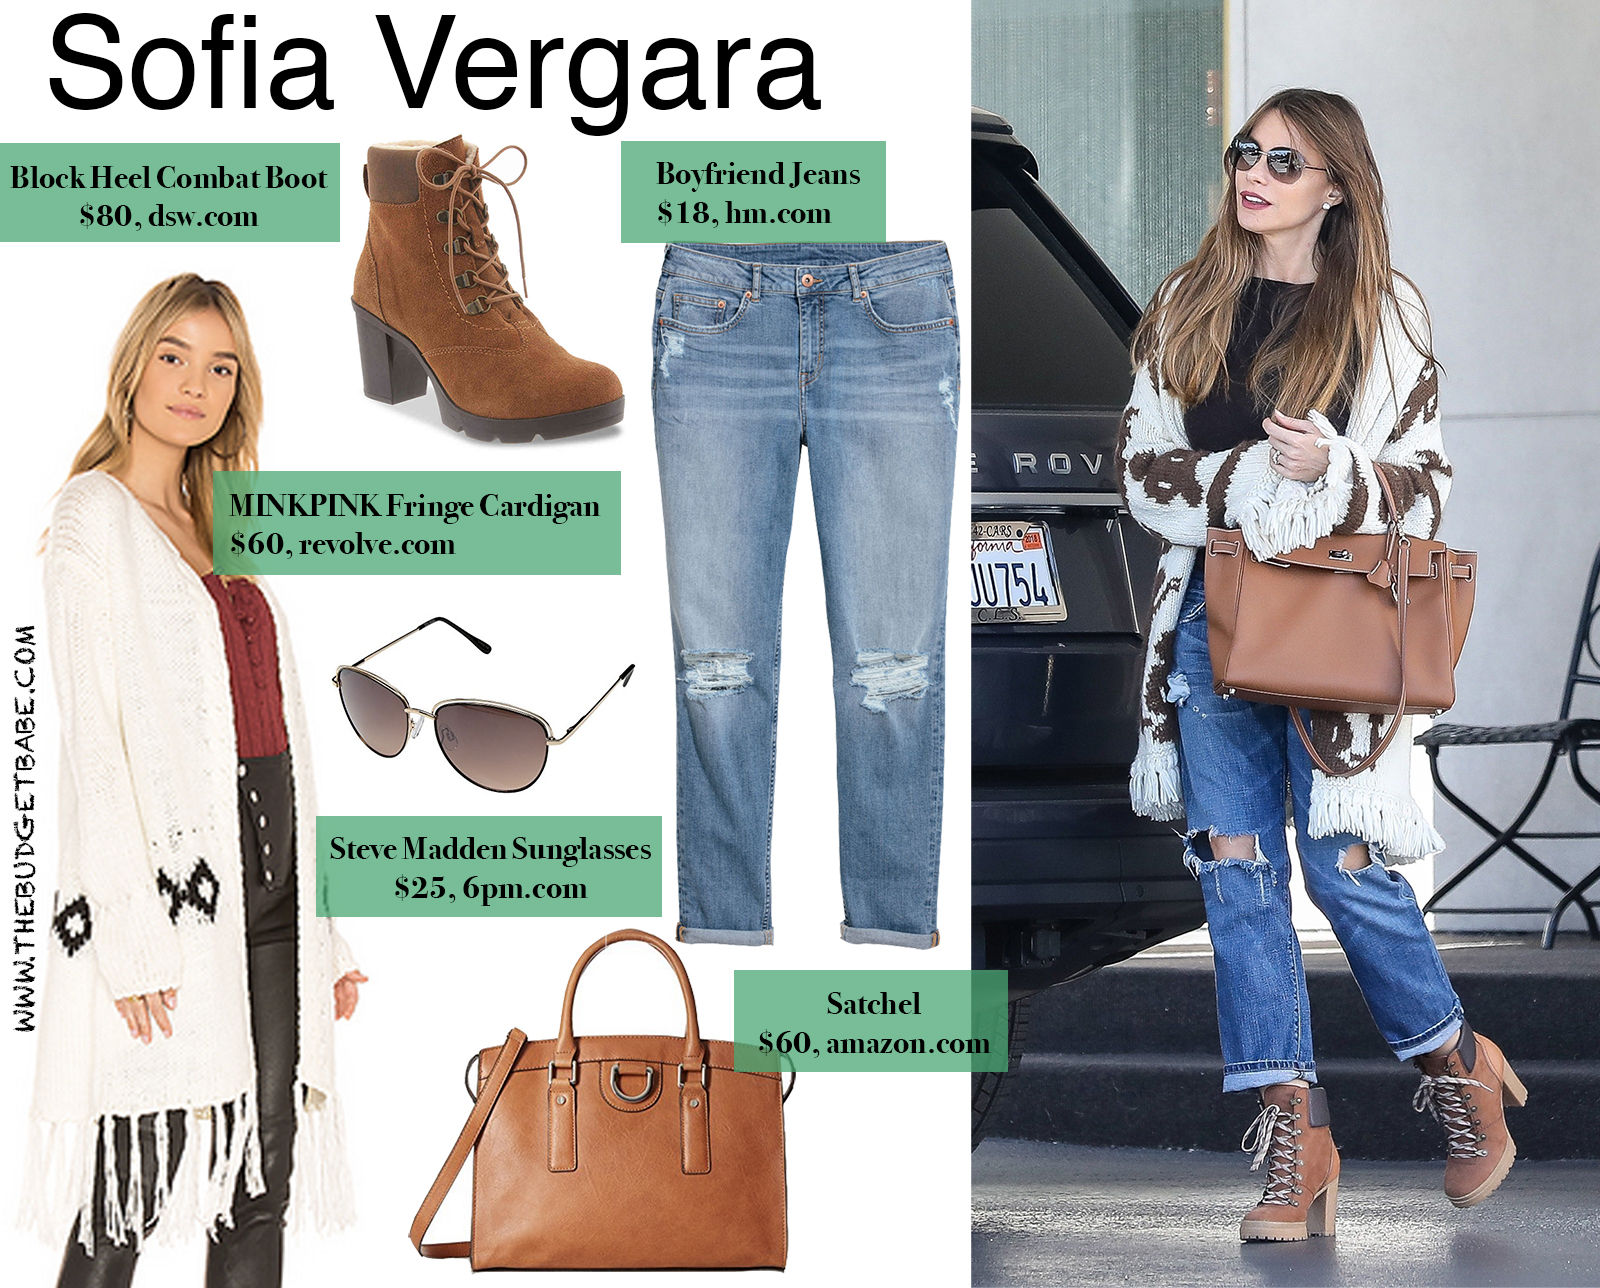 Sofia Vergara Fringe Cardigan and Heeled Combat Boots Look for Less